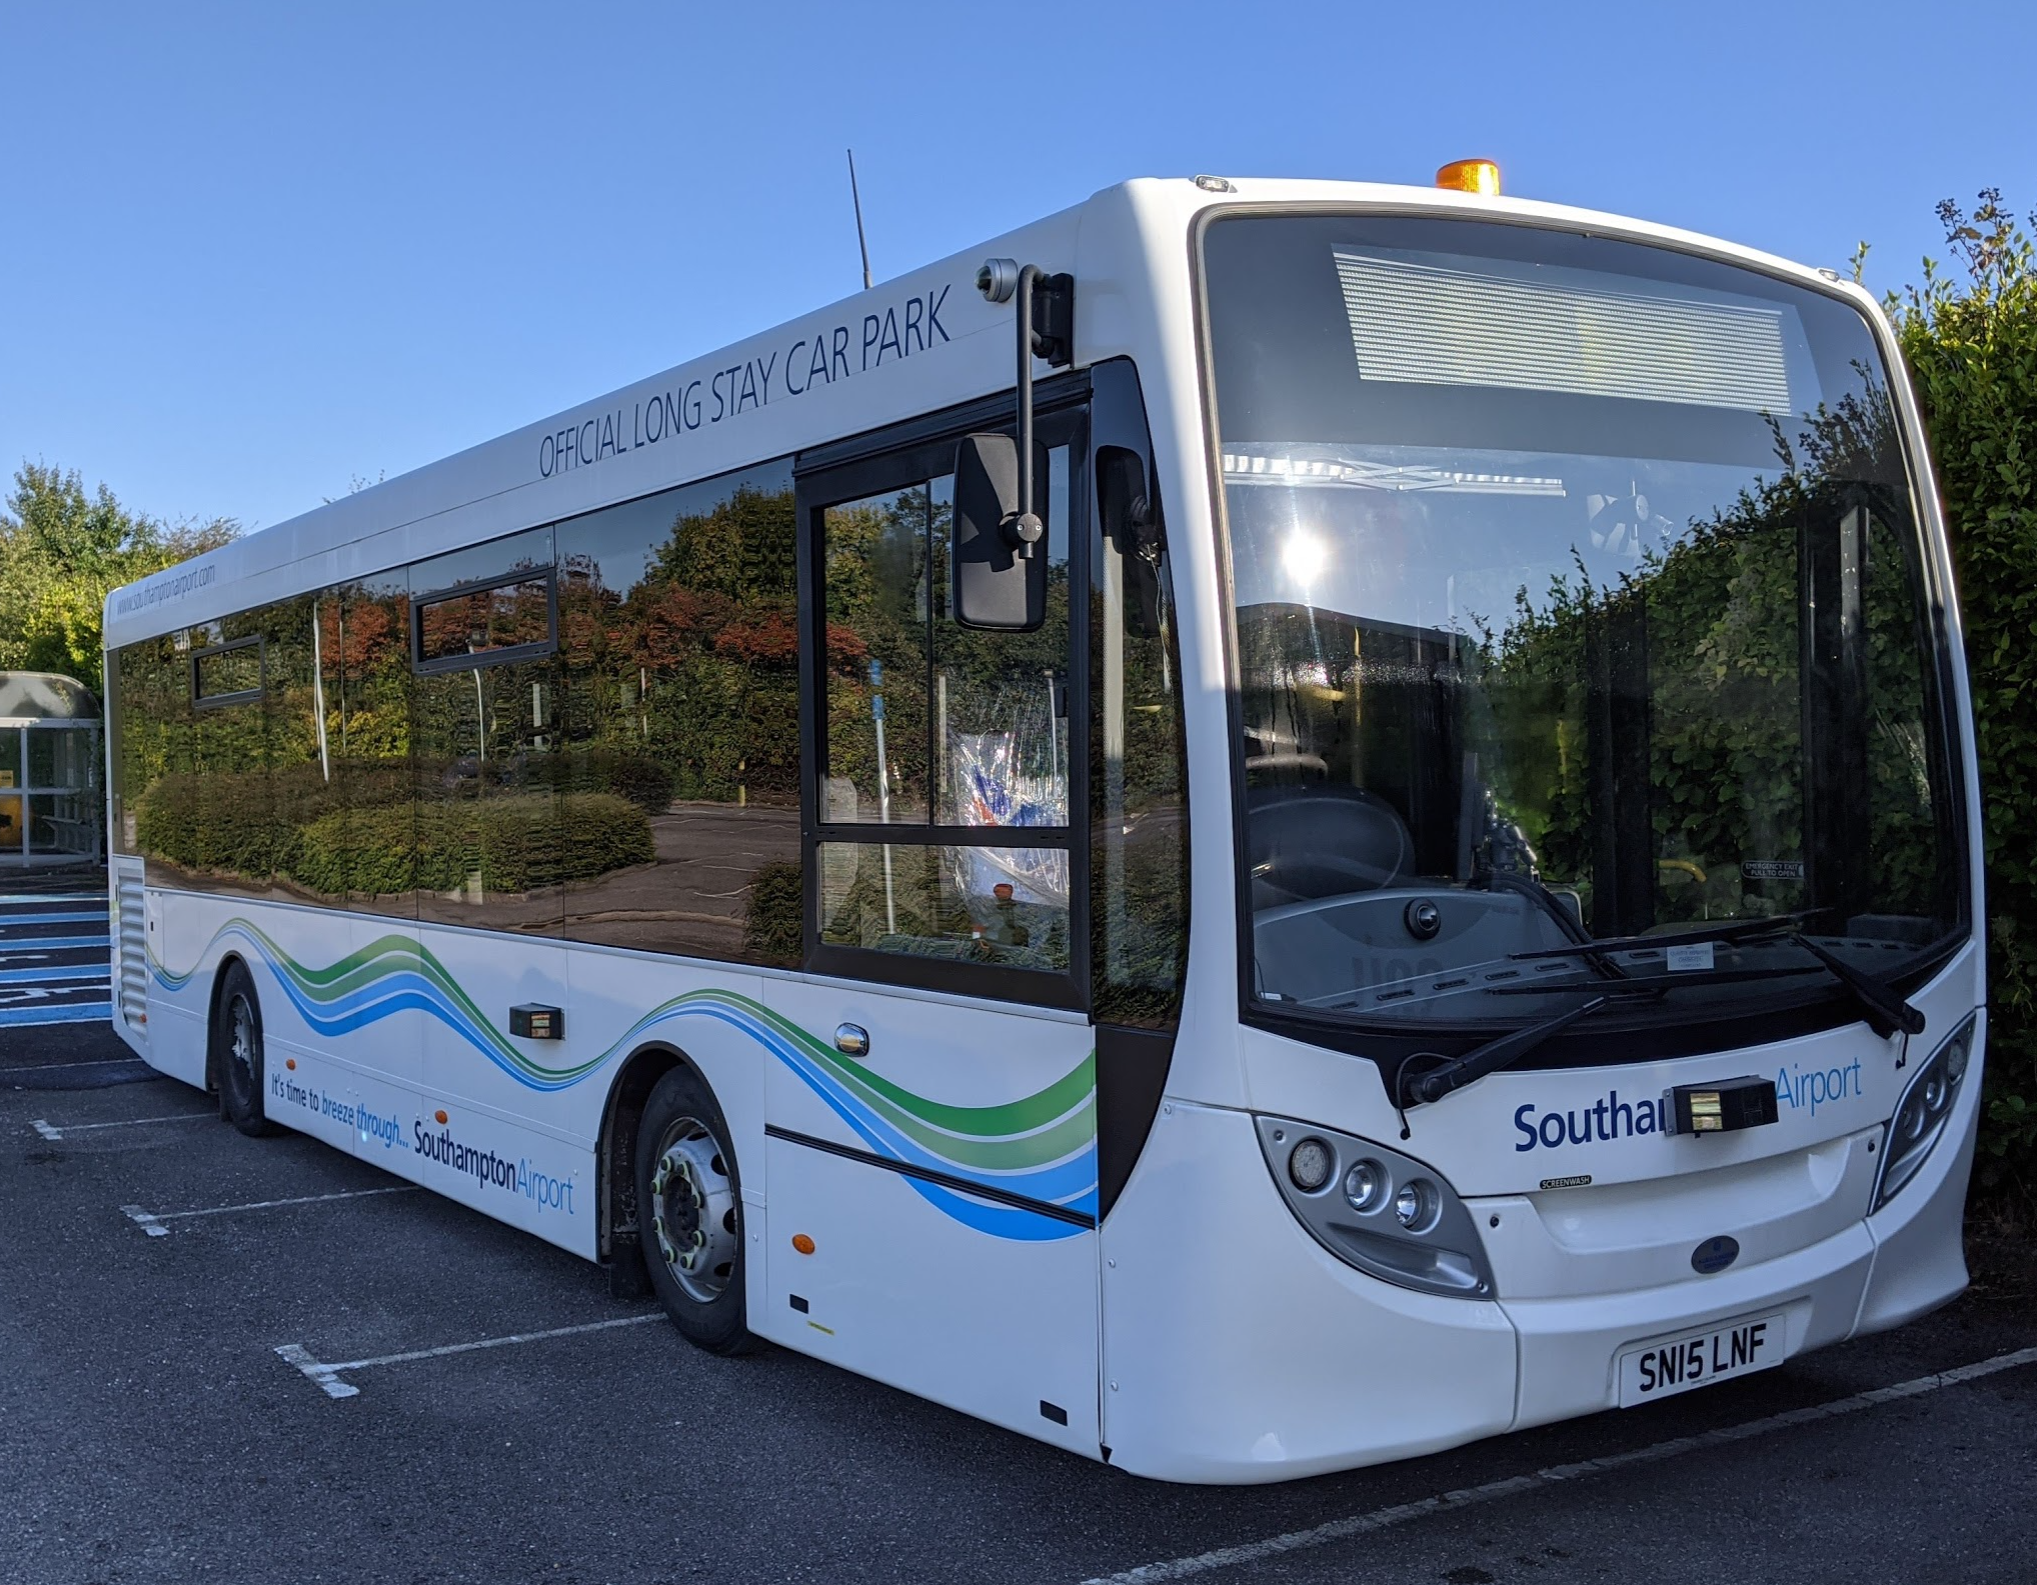 Southampton Airport & Conigital in UK first with Autonomous Bus Trial